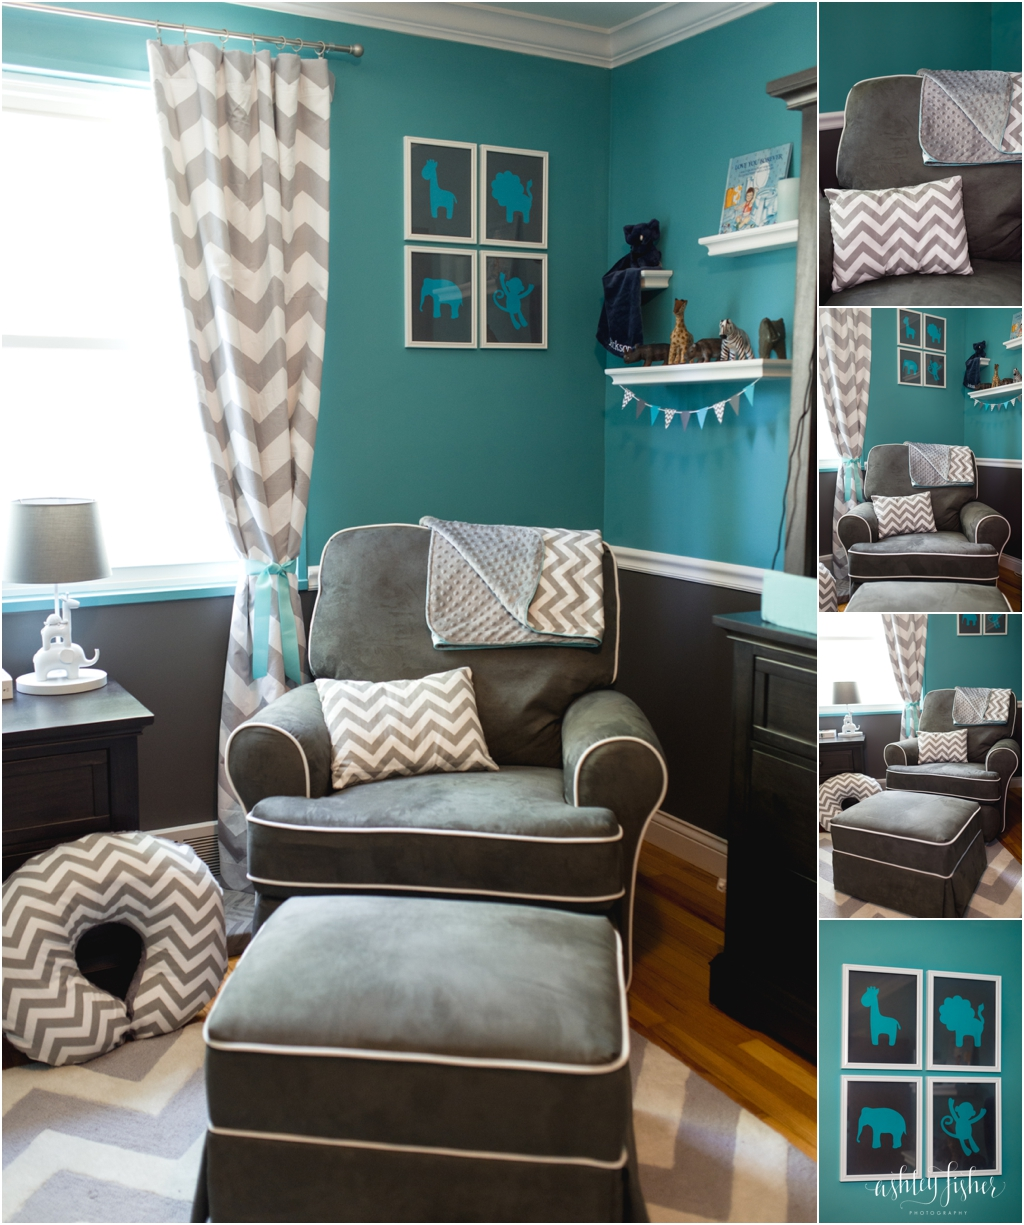 Baby Boy Bedroom Colors Contemporary One Bedroom Apartment Design Navy Blue Bedroom Paint Boy Kid Bedroom Furniture: Jackson's Teal And Grey Chevron Safari Nursery